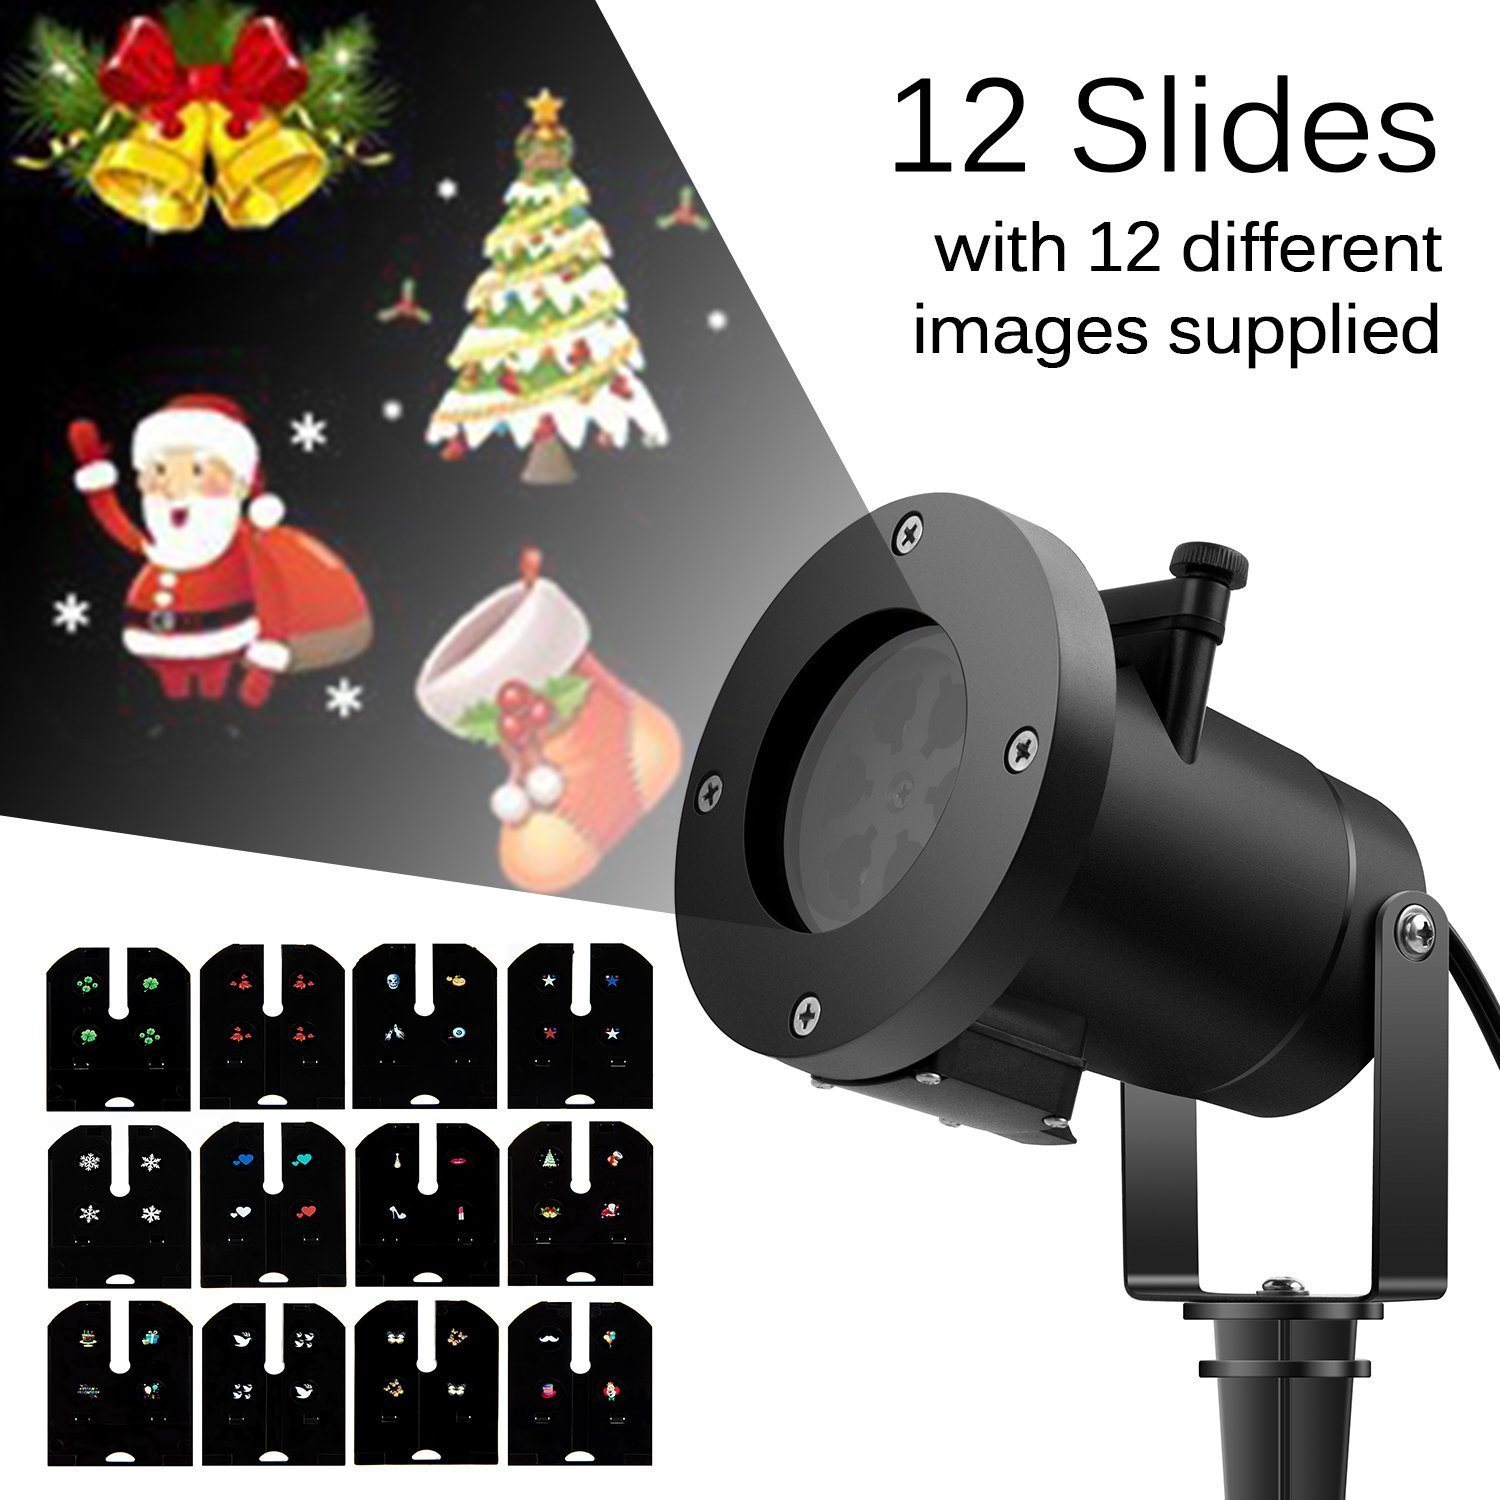 Waterproof LED Christmas Garden Light